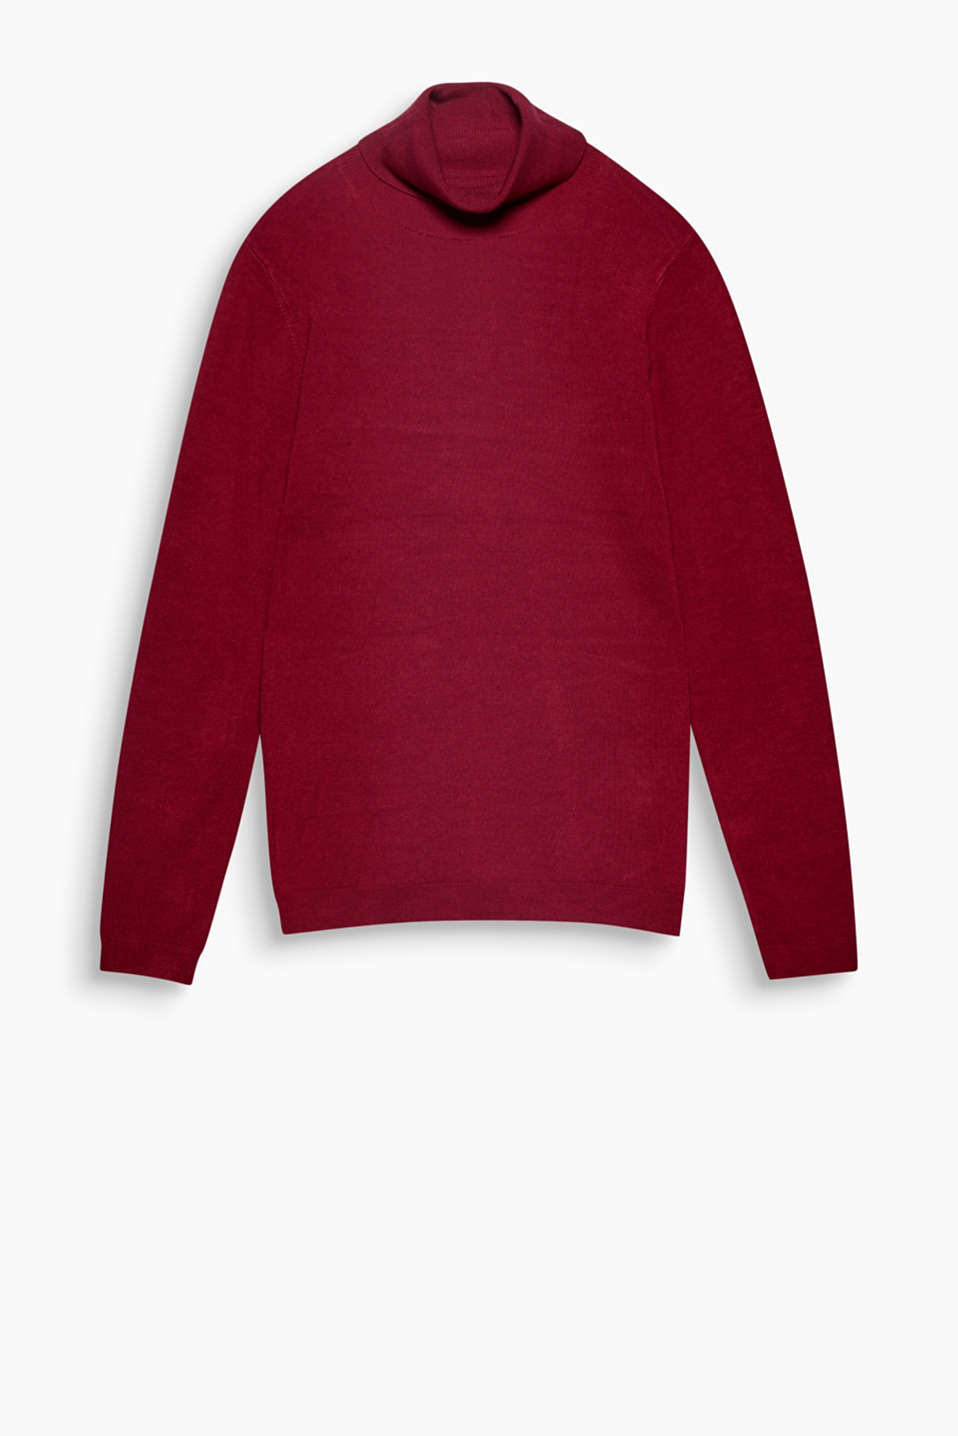 Top basic for autumn: a clean, fine knit polo neck always works – on its own or mixed and matched!